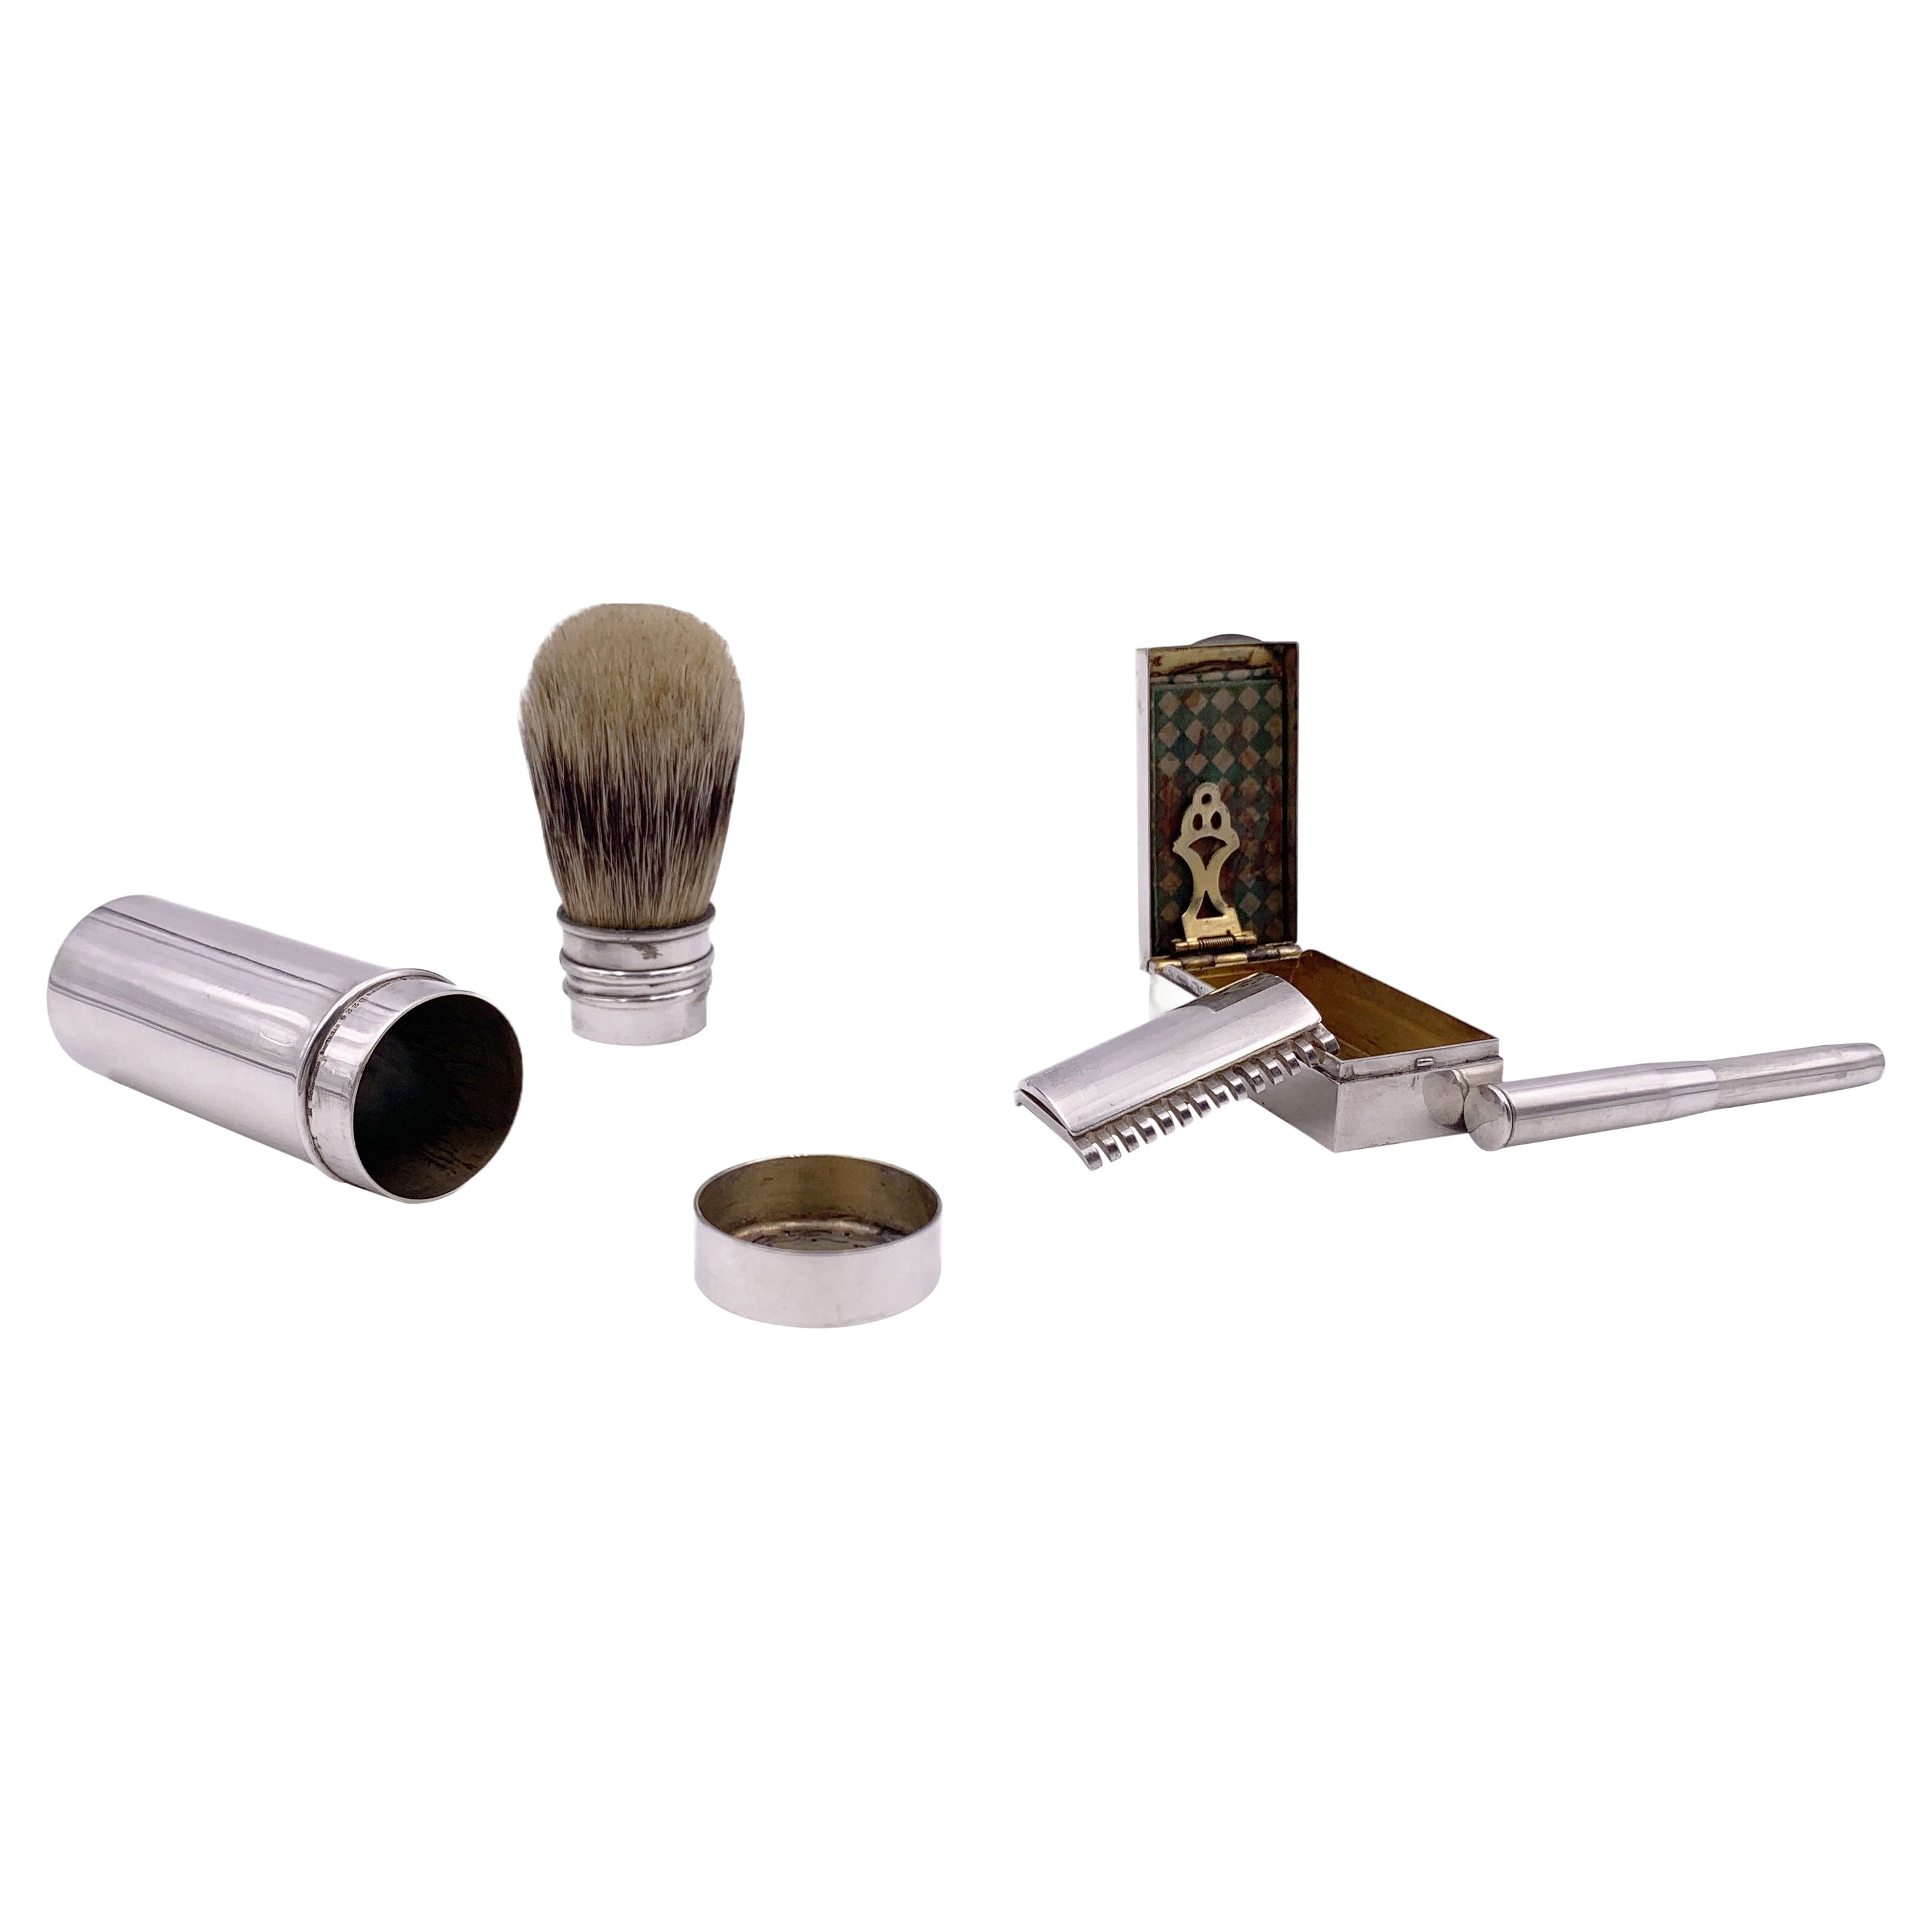 Tiffany & Co. Sterling Silver 3-Piece Traveling Grooming Set w/ Razor & Brush